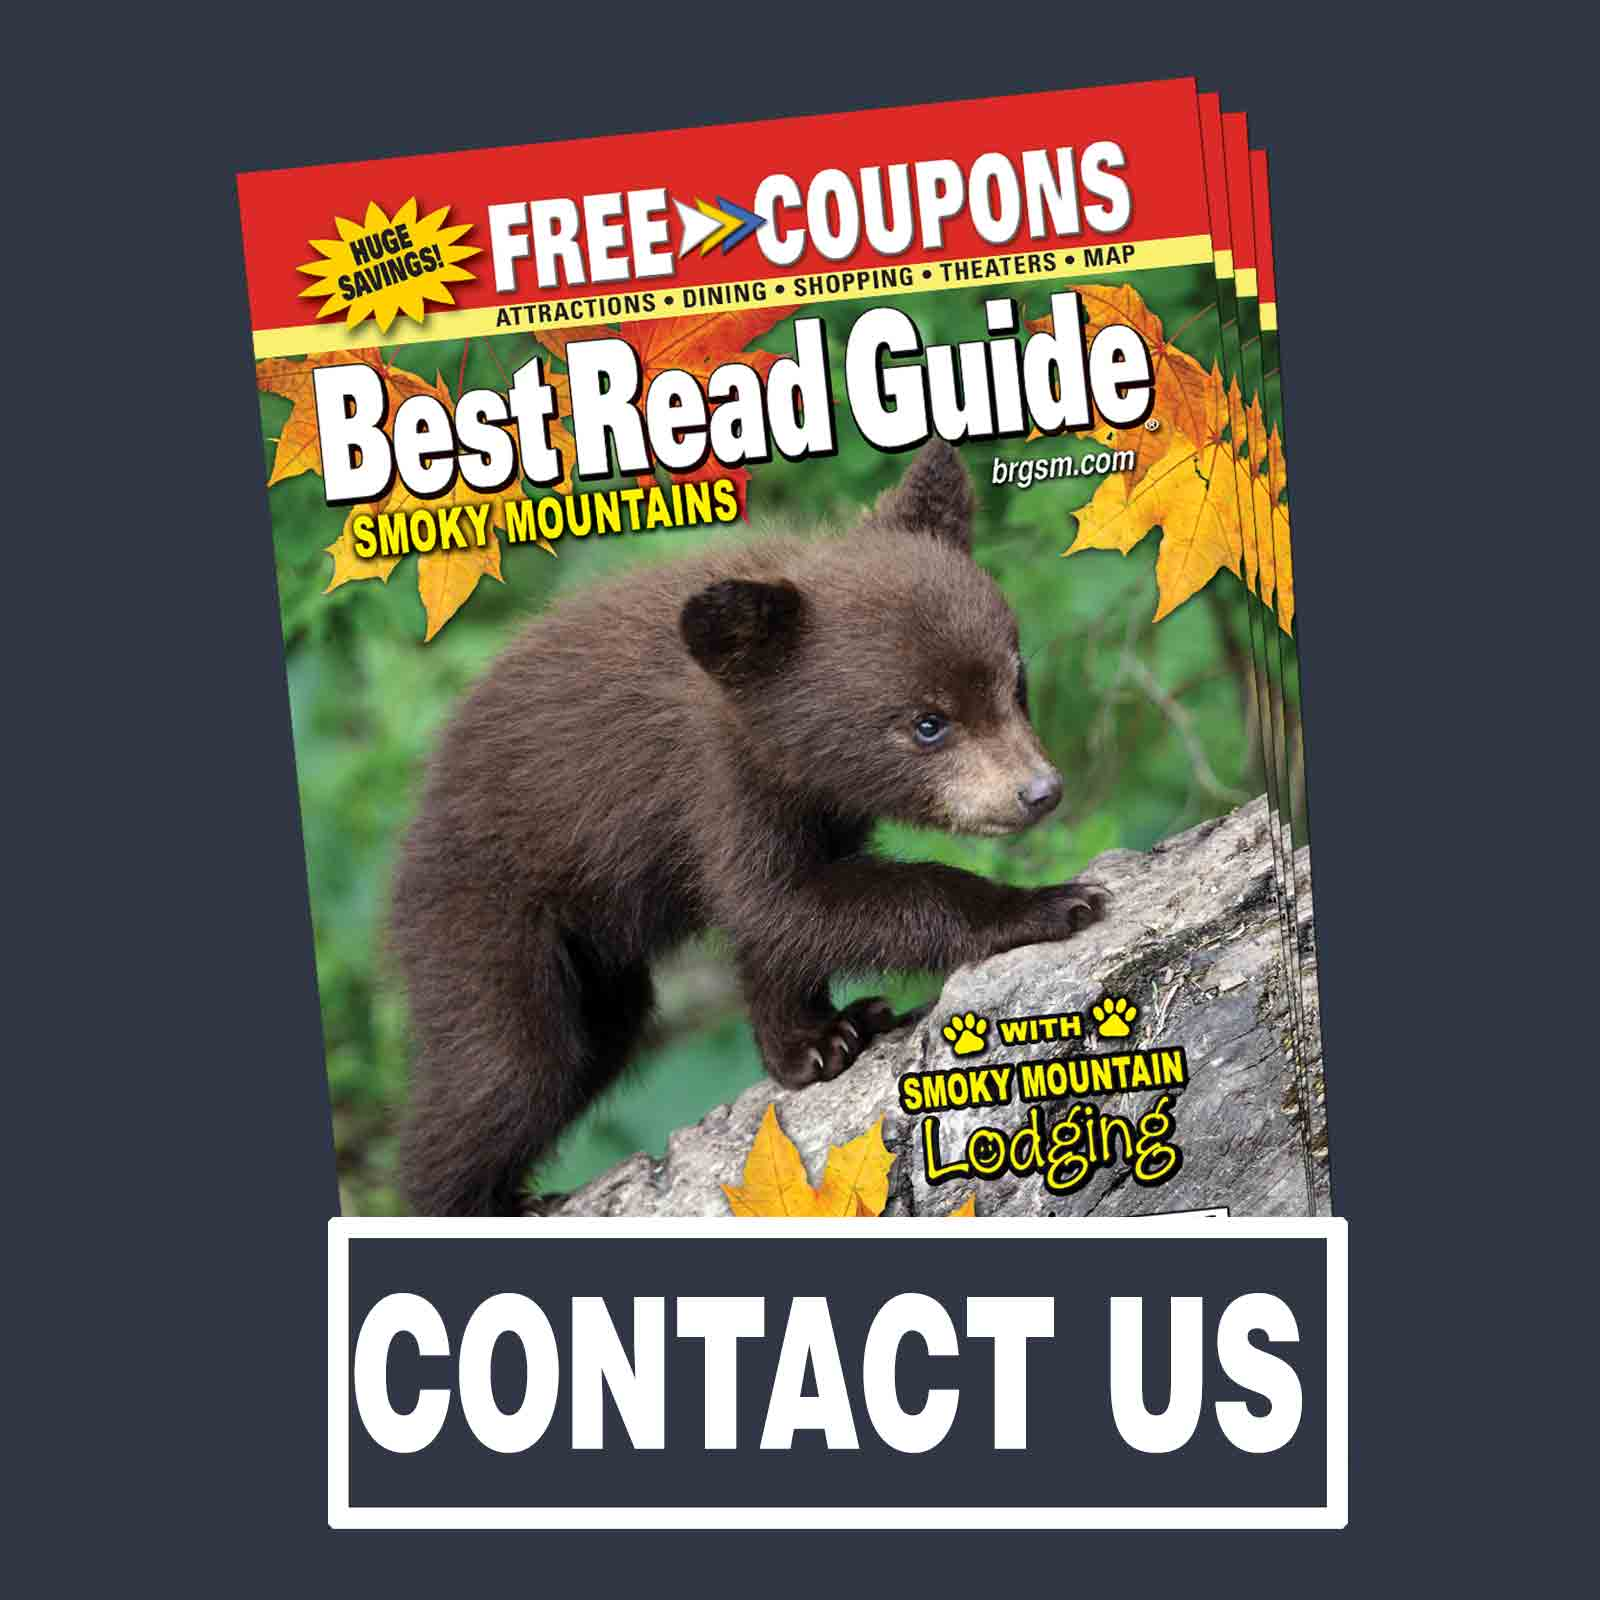 BRG Contact Us General - Contact Best Read Guide - Pigeon Forge Gatlinburg Smoky Mountains